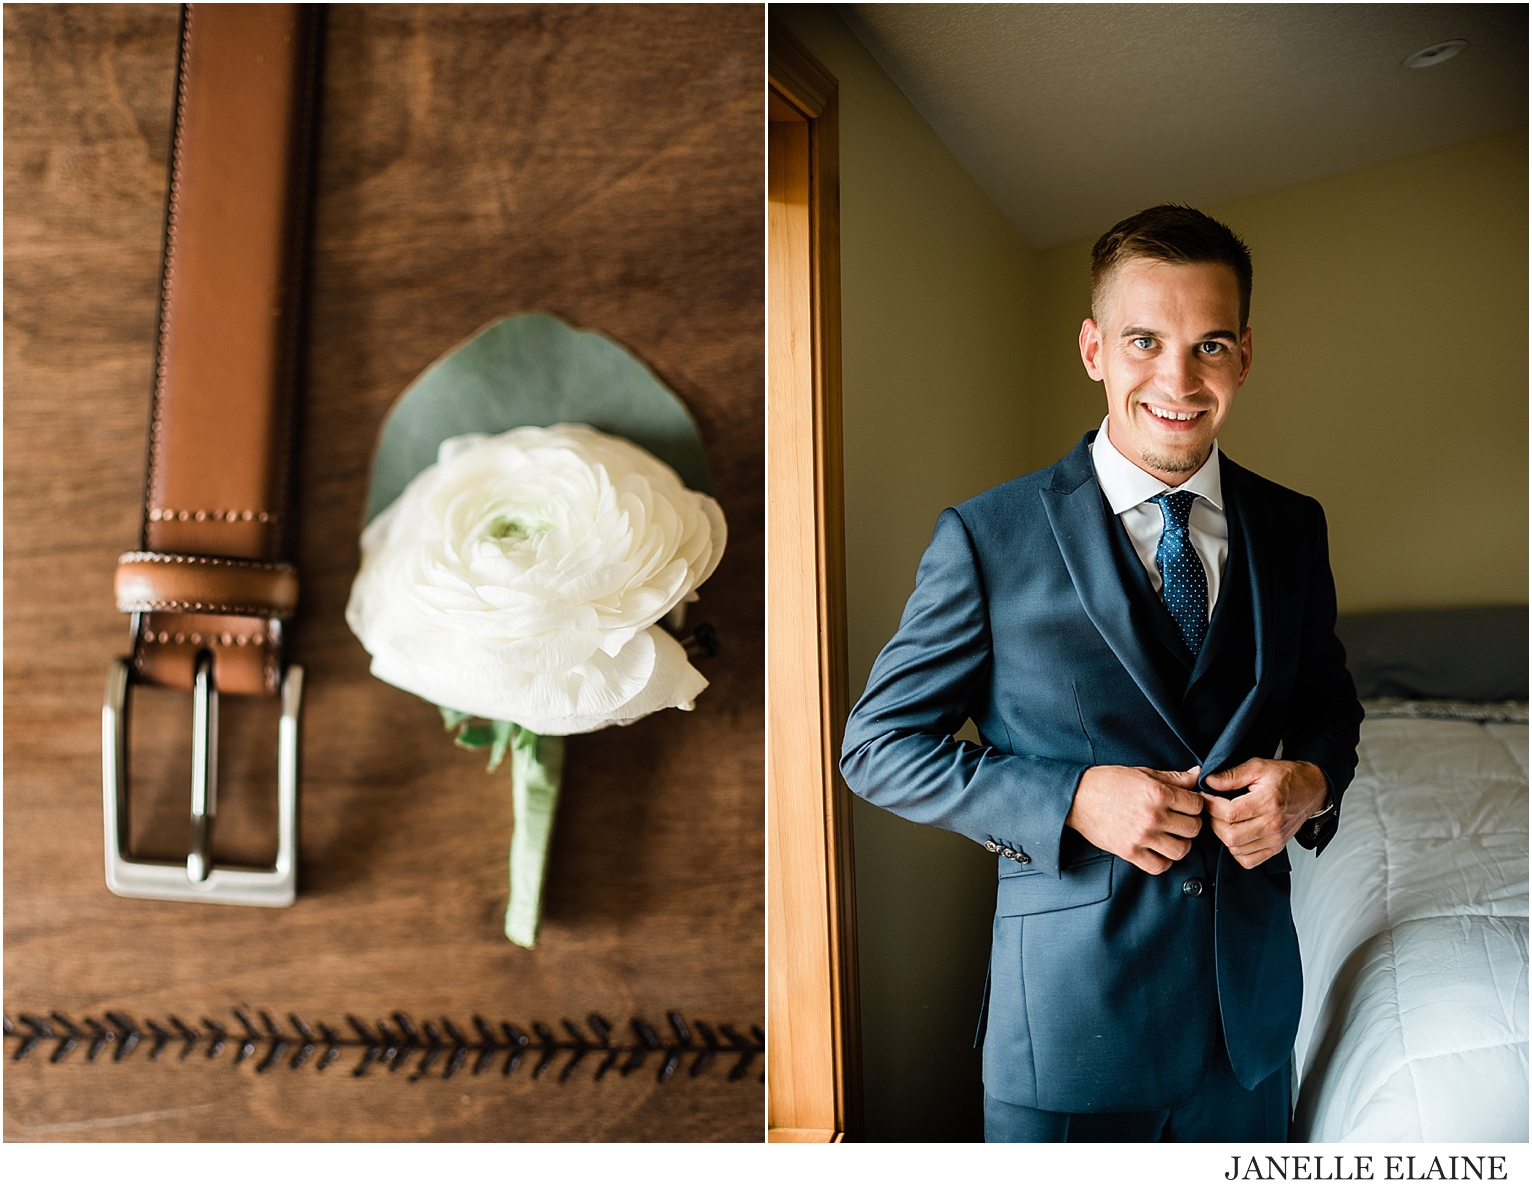 Tricia and Nathan Goddard Wedding-Getting Ready Photos-Janelle Elaine Photography-95.jpg